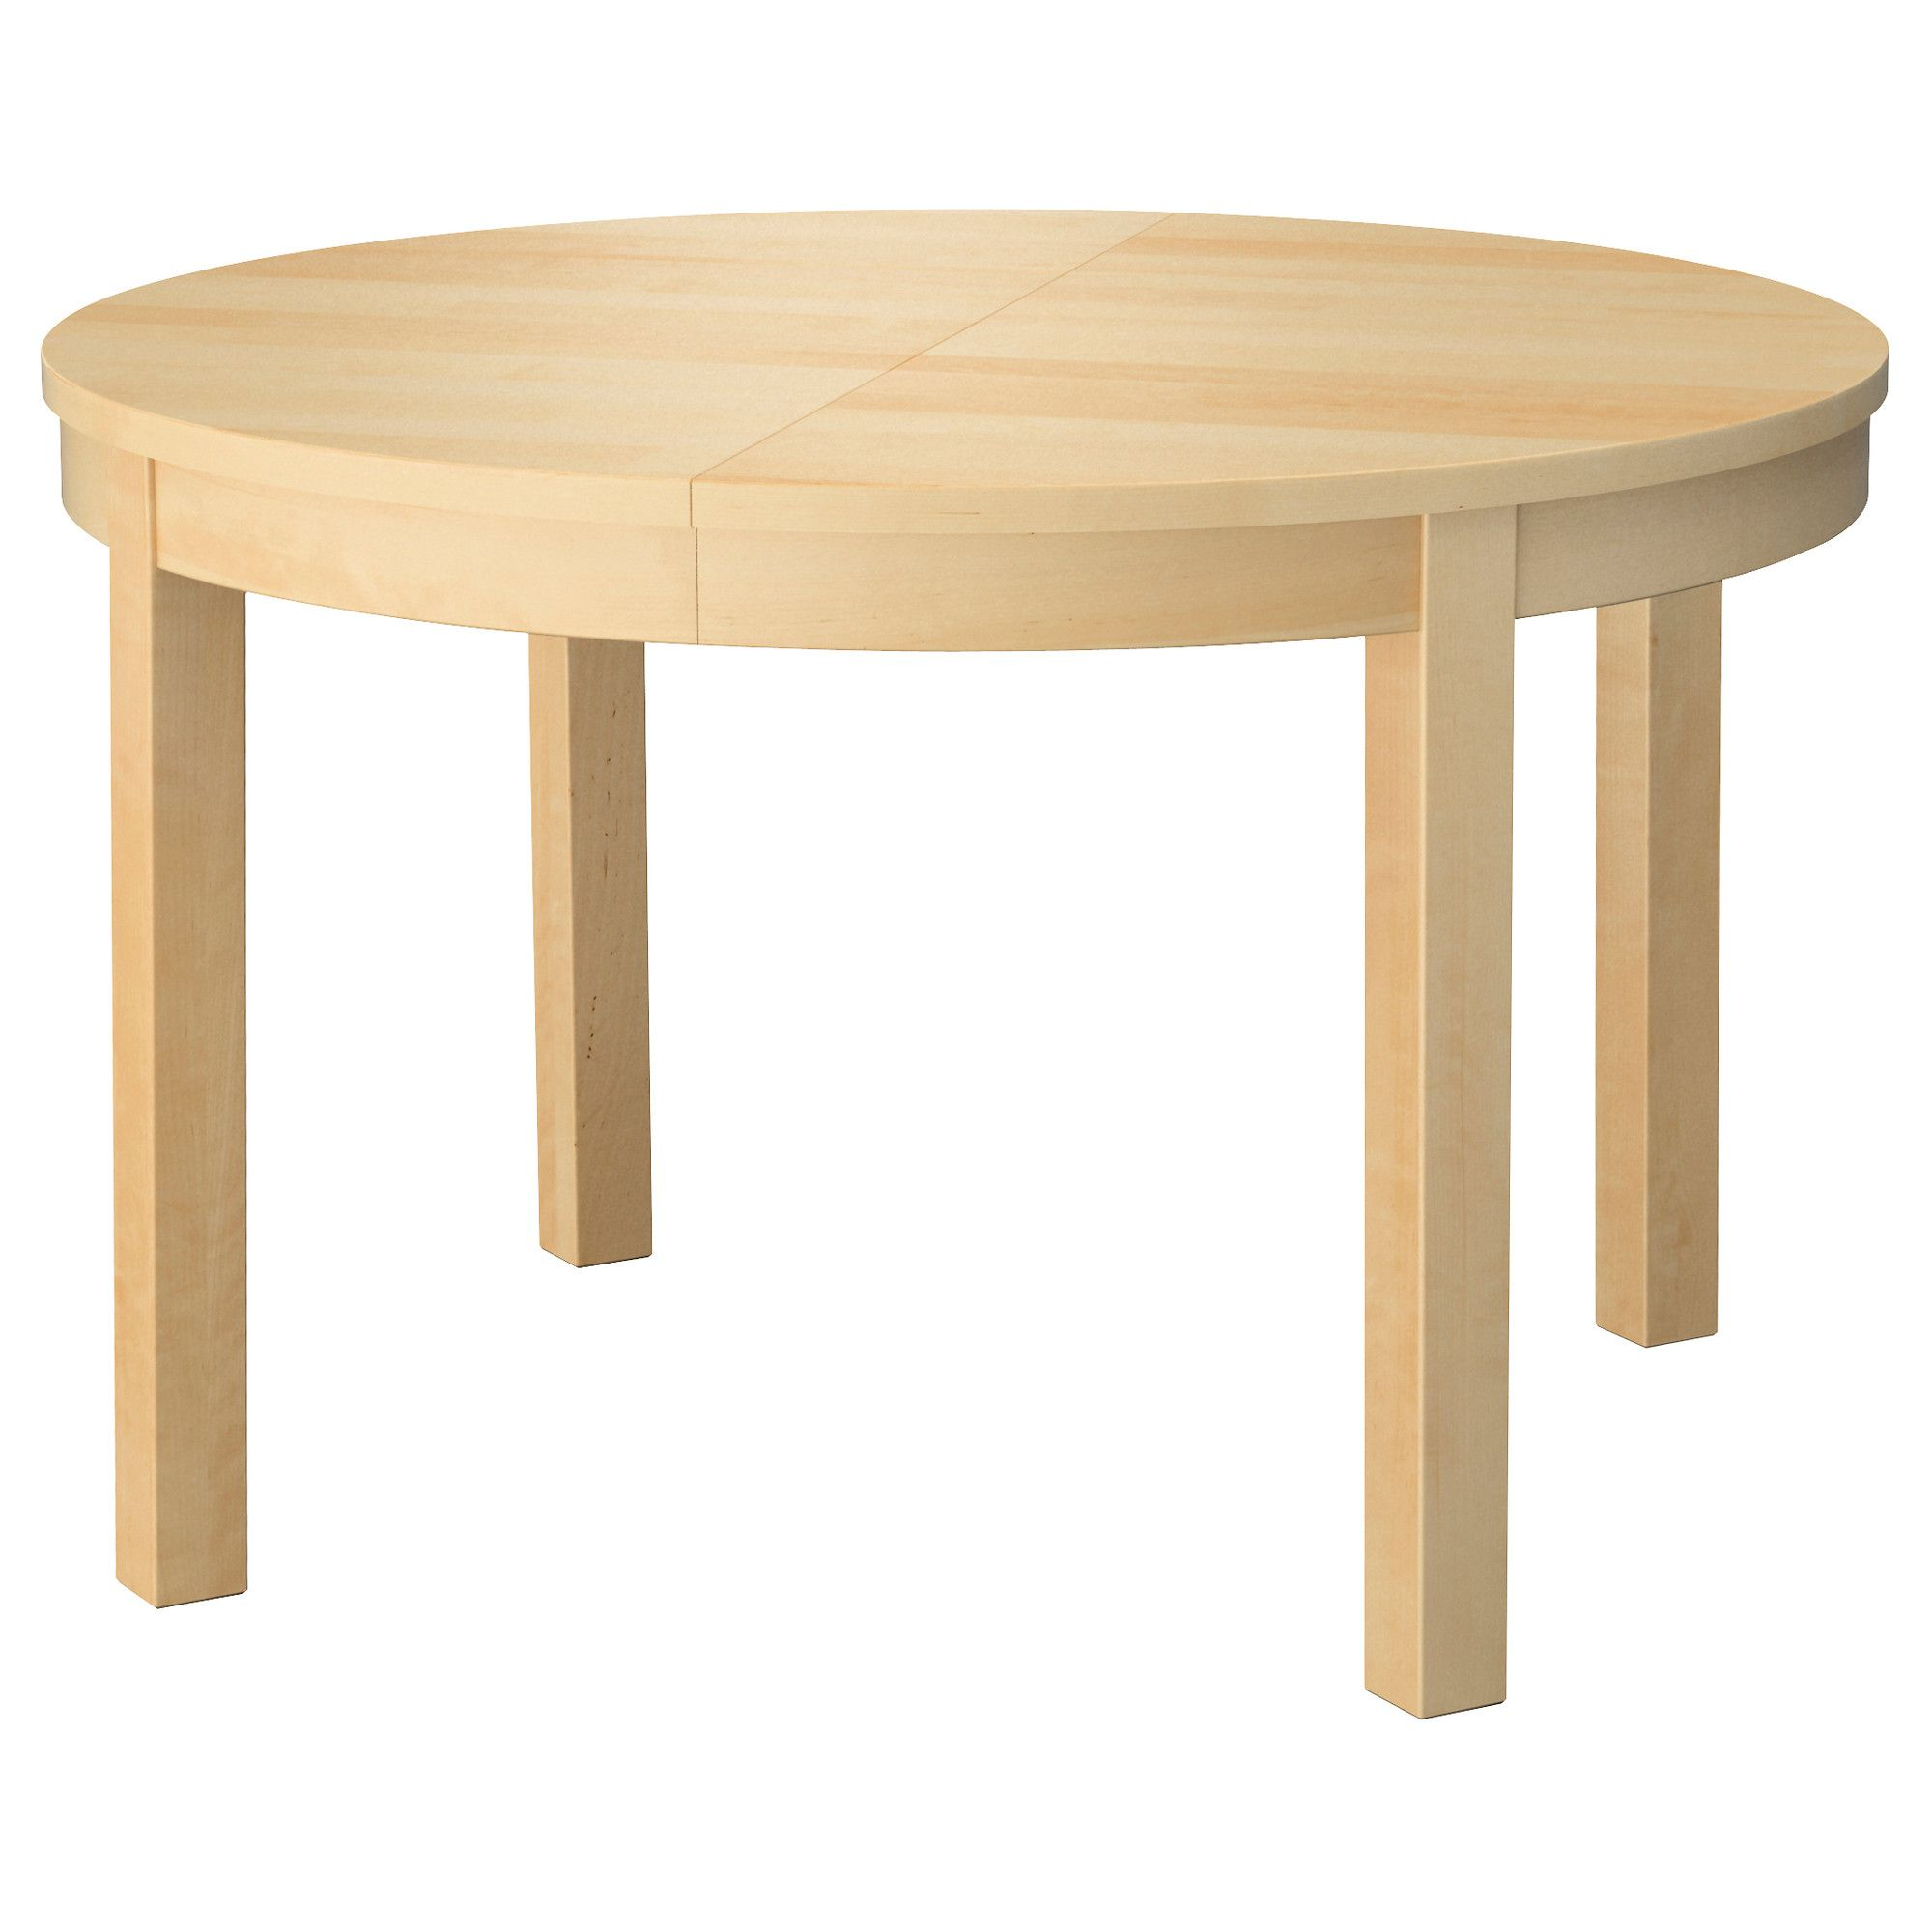 ikea extendable table instructions